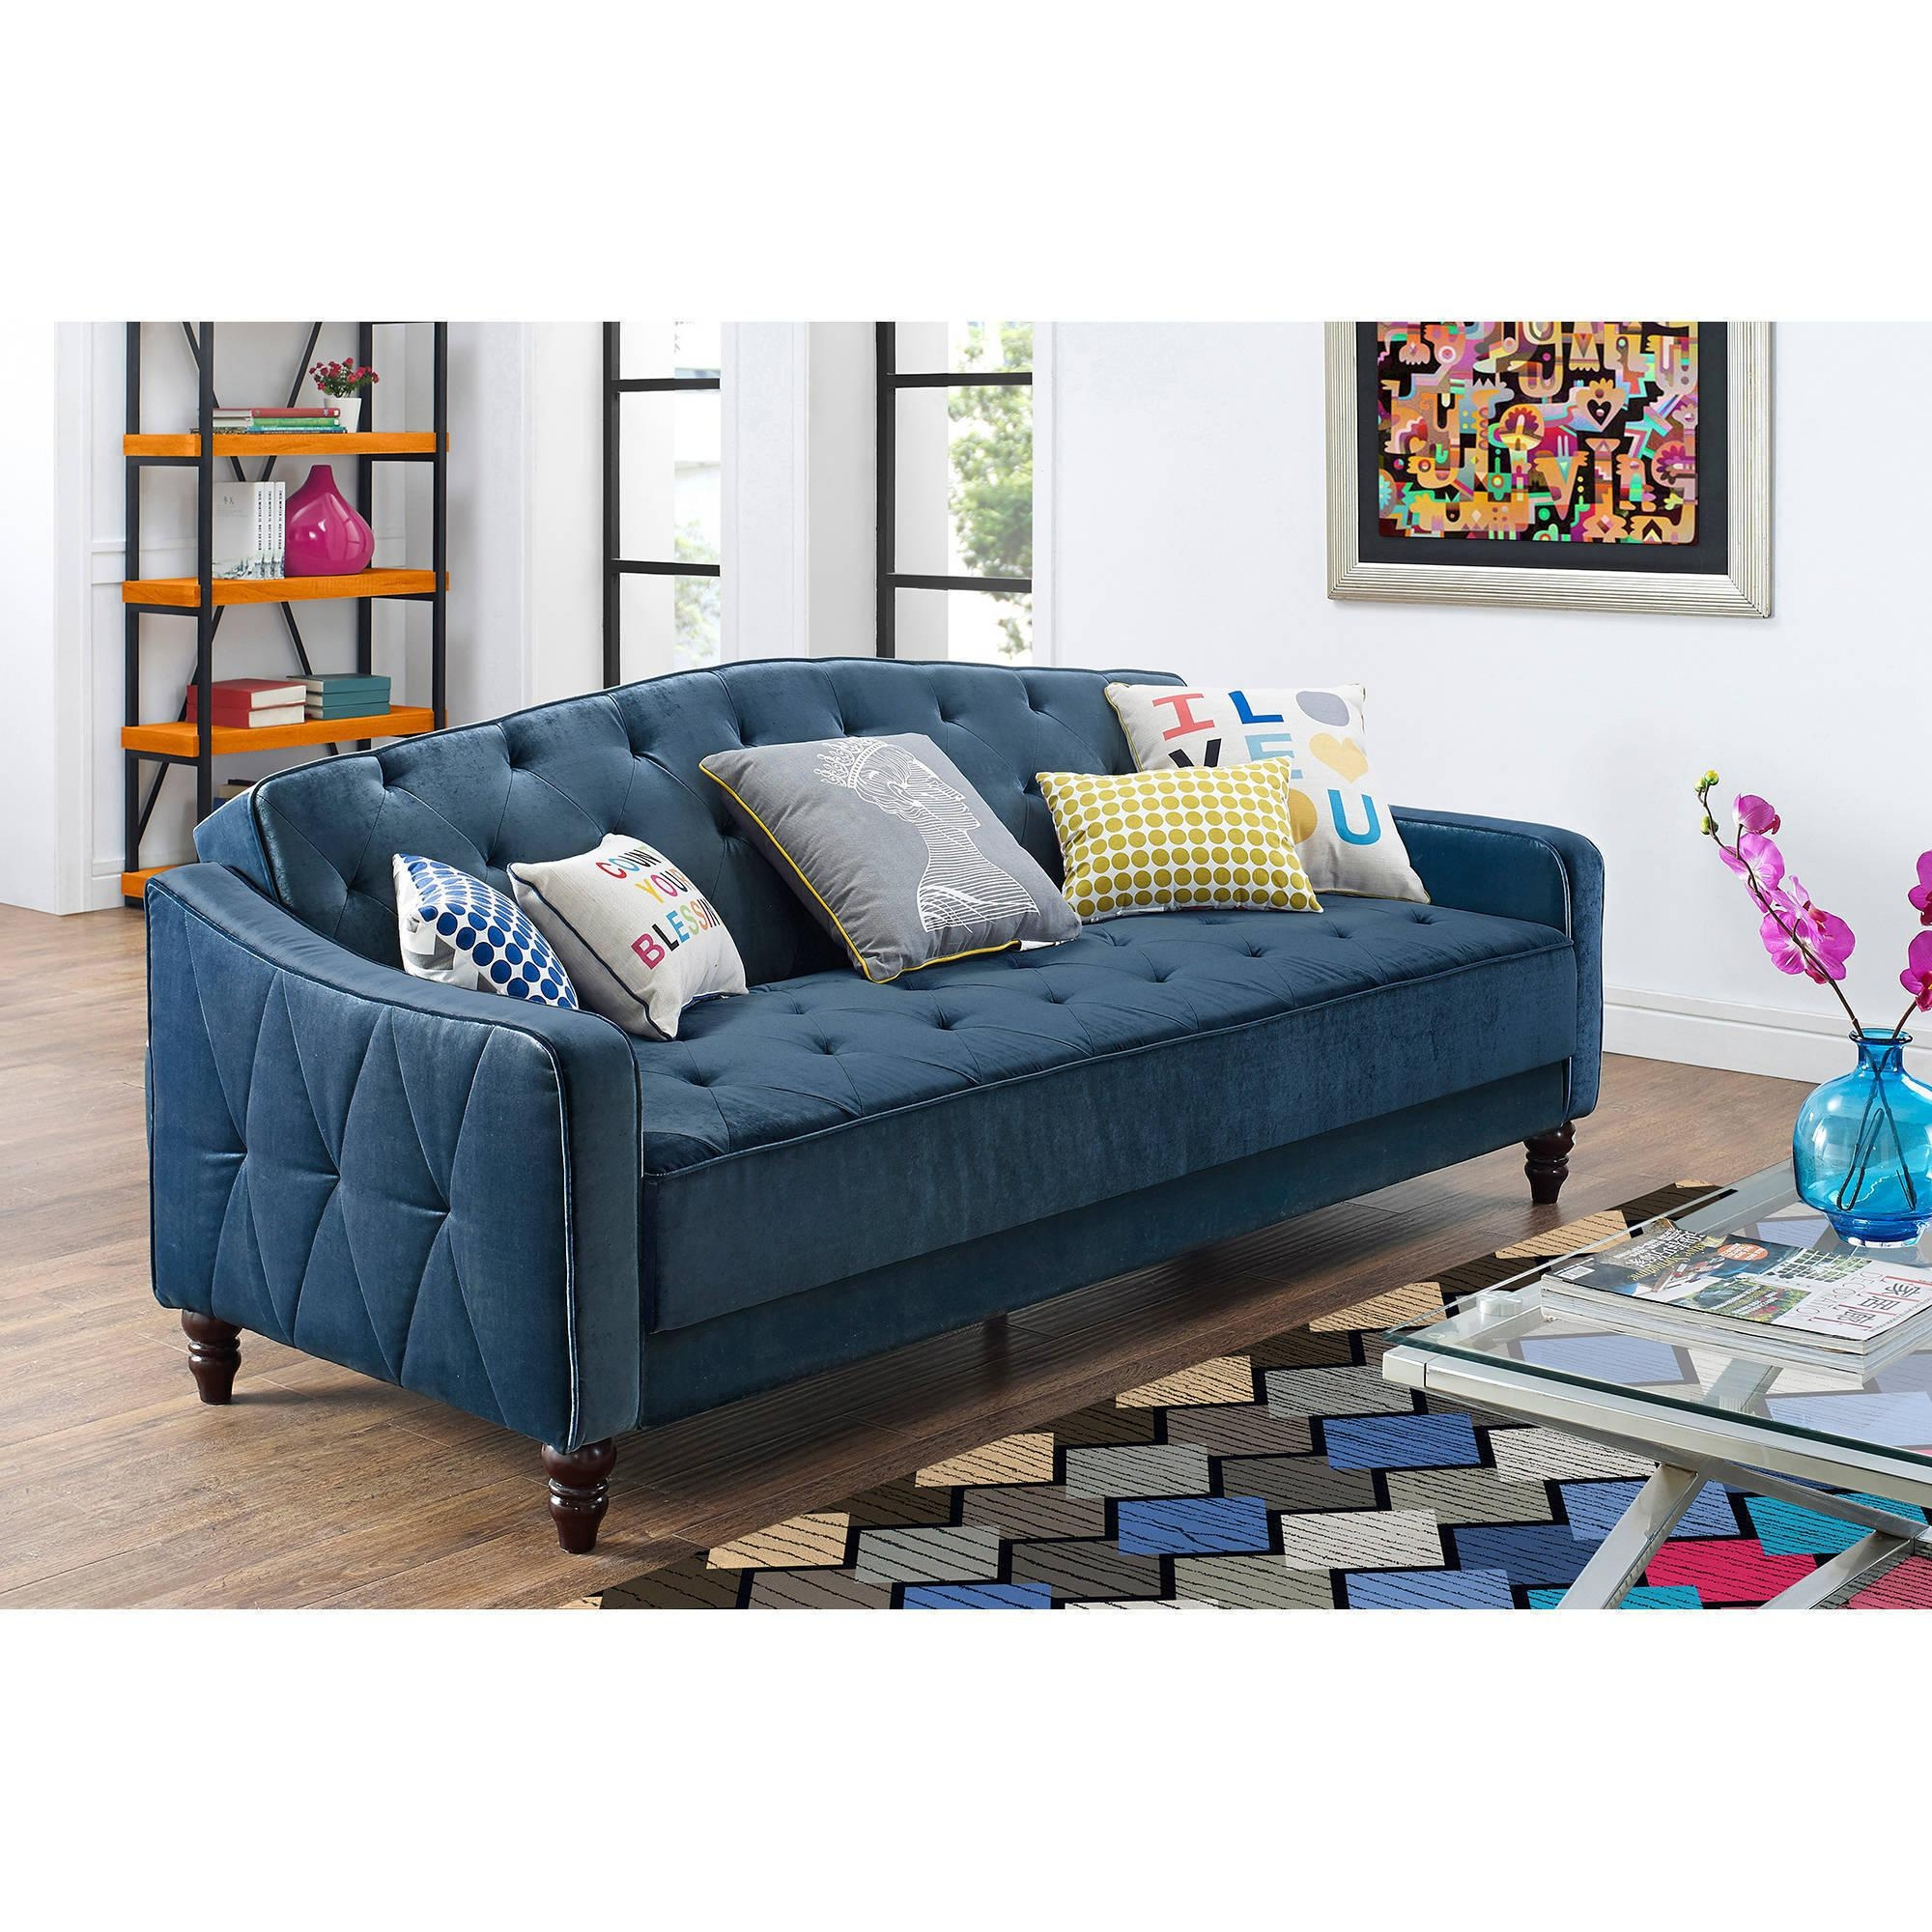 Mainstays Memory Foam Futon, Multiple Colors – Walmart With Colorful Sofas And Chairs (Image 14 of 20)